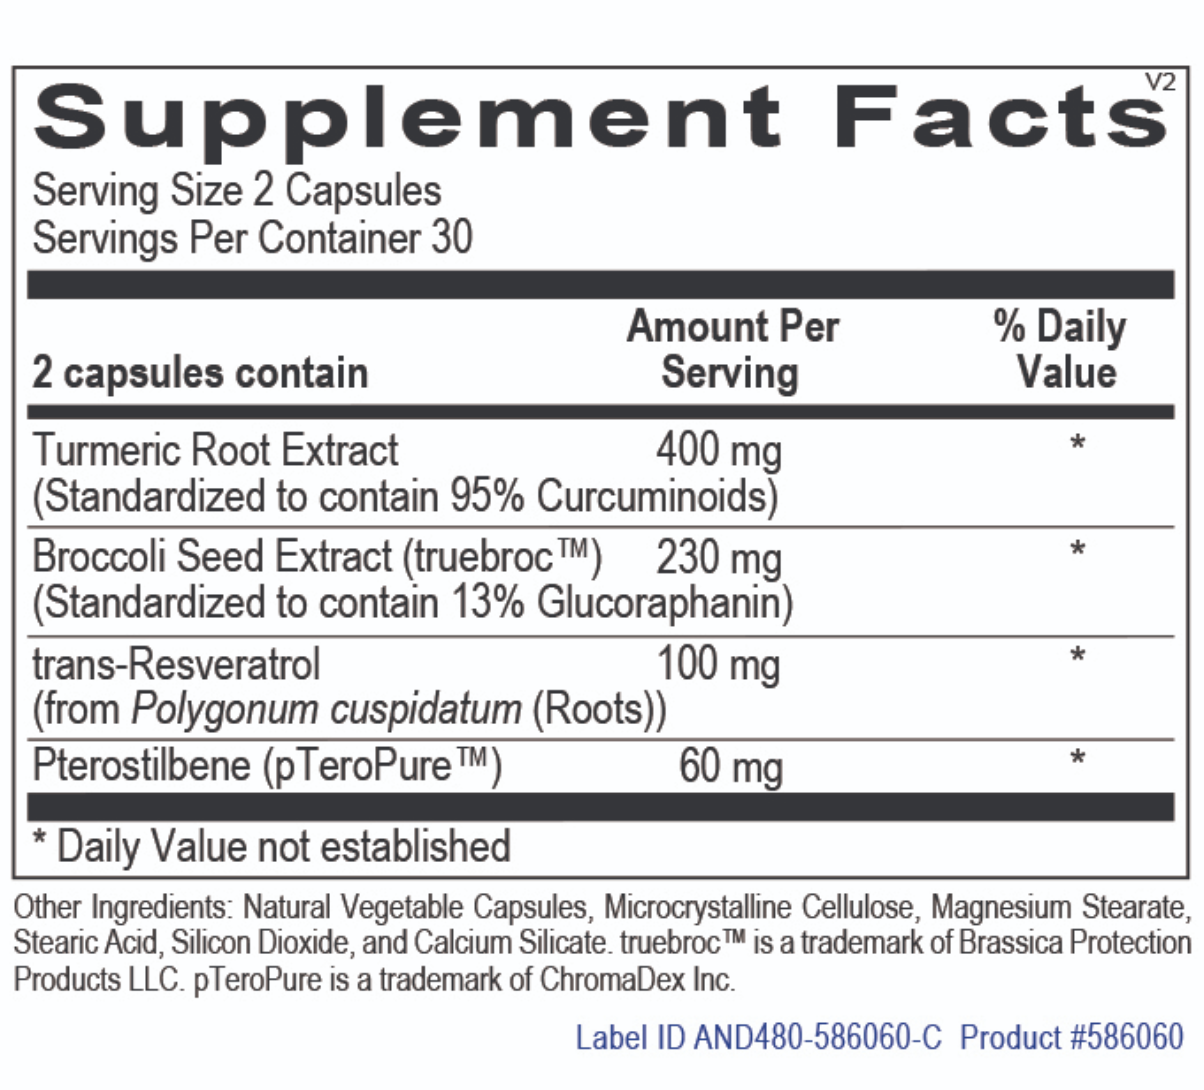 Anti Ox - Glucoraphanin and Curcumin